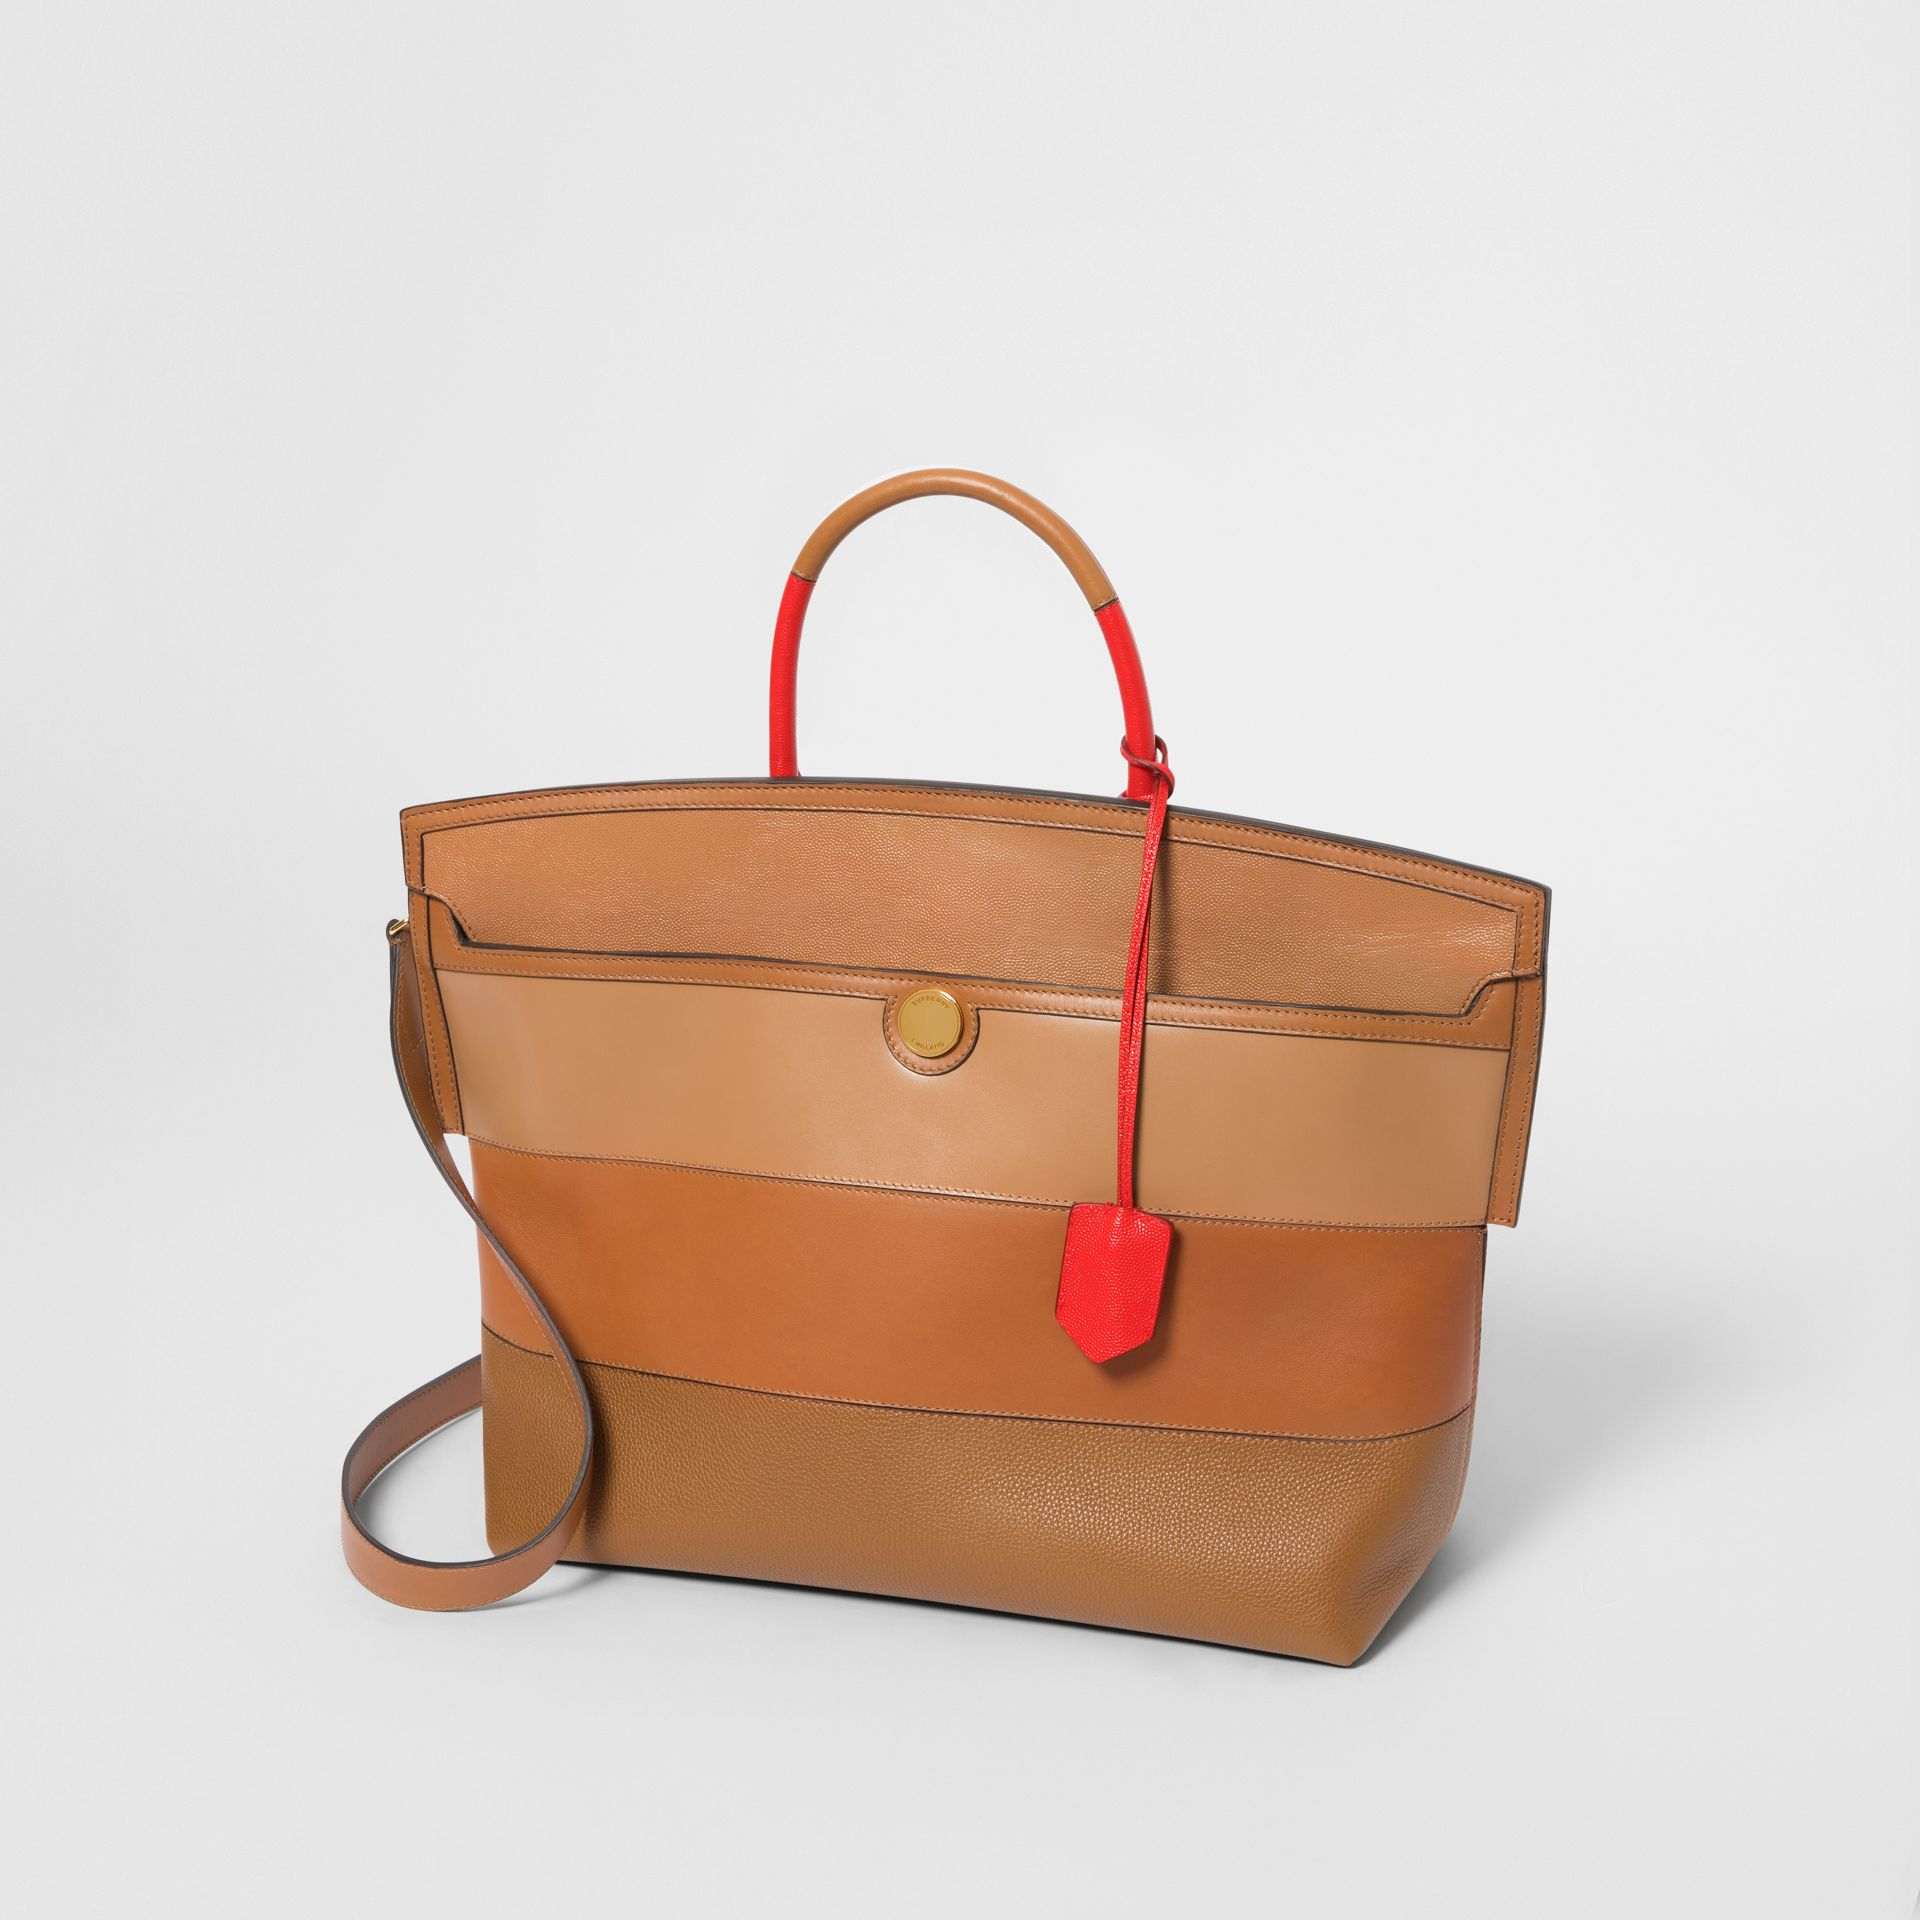 Panelled Leather Society Top Handle Bag in Warm Camel - Women | Burberry - gallery image 3